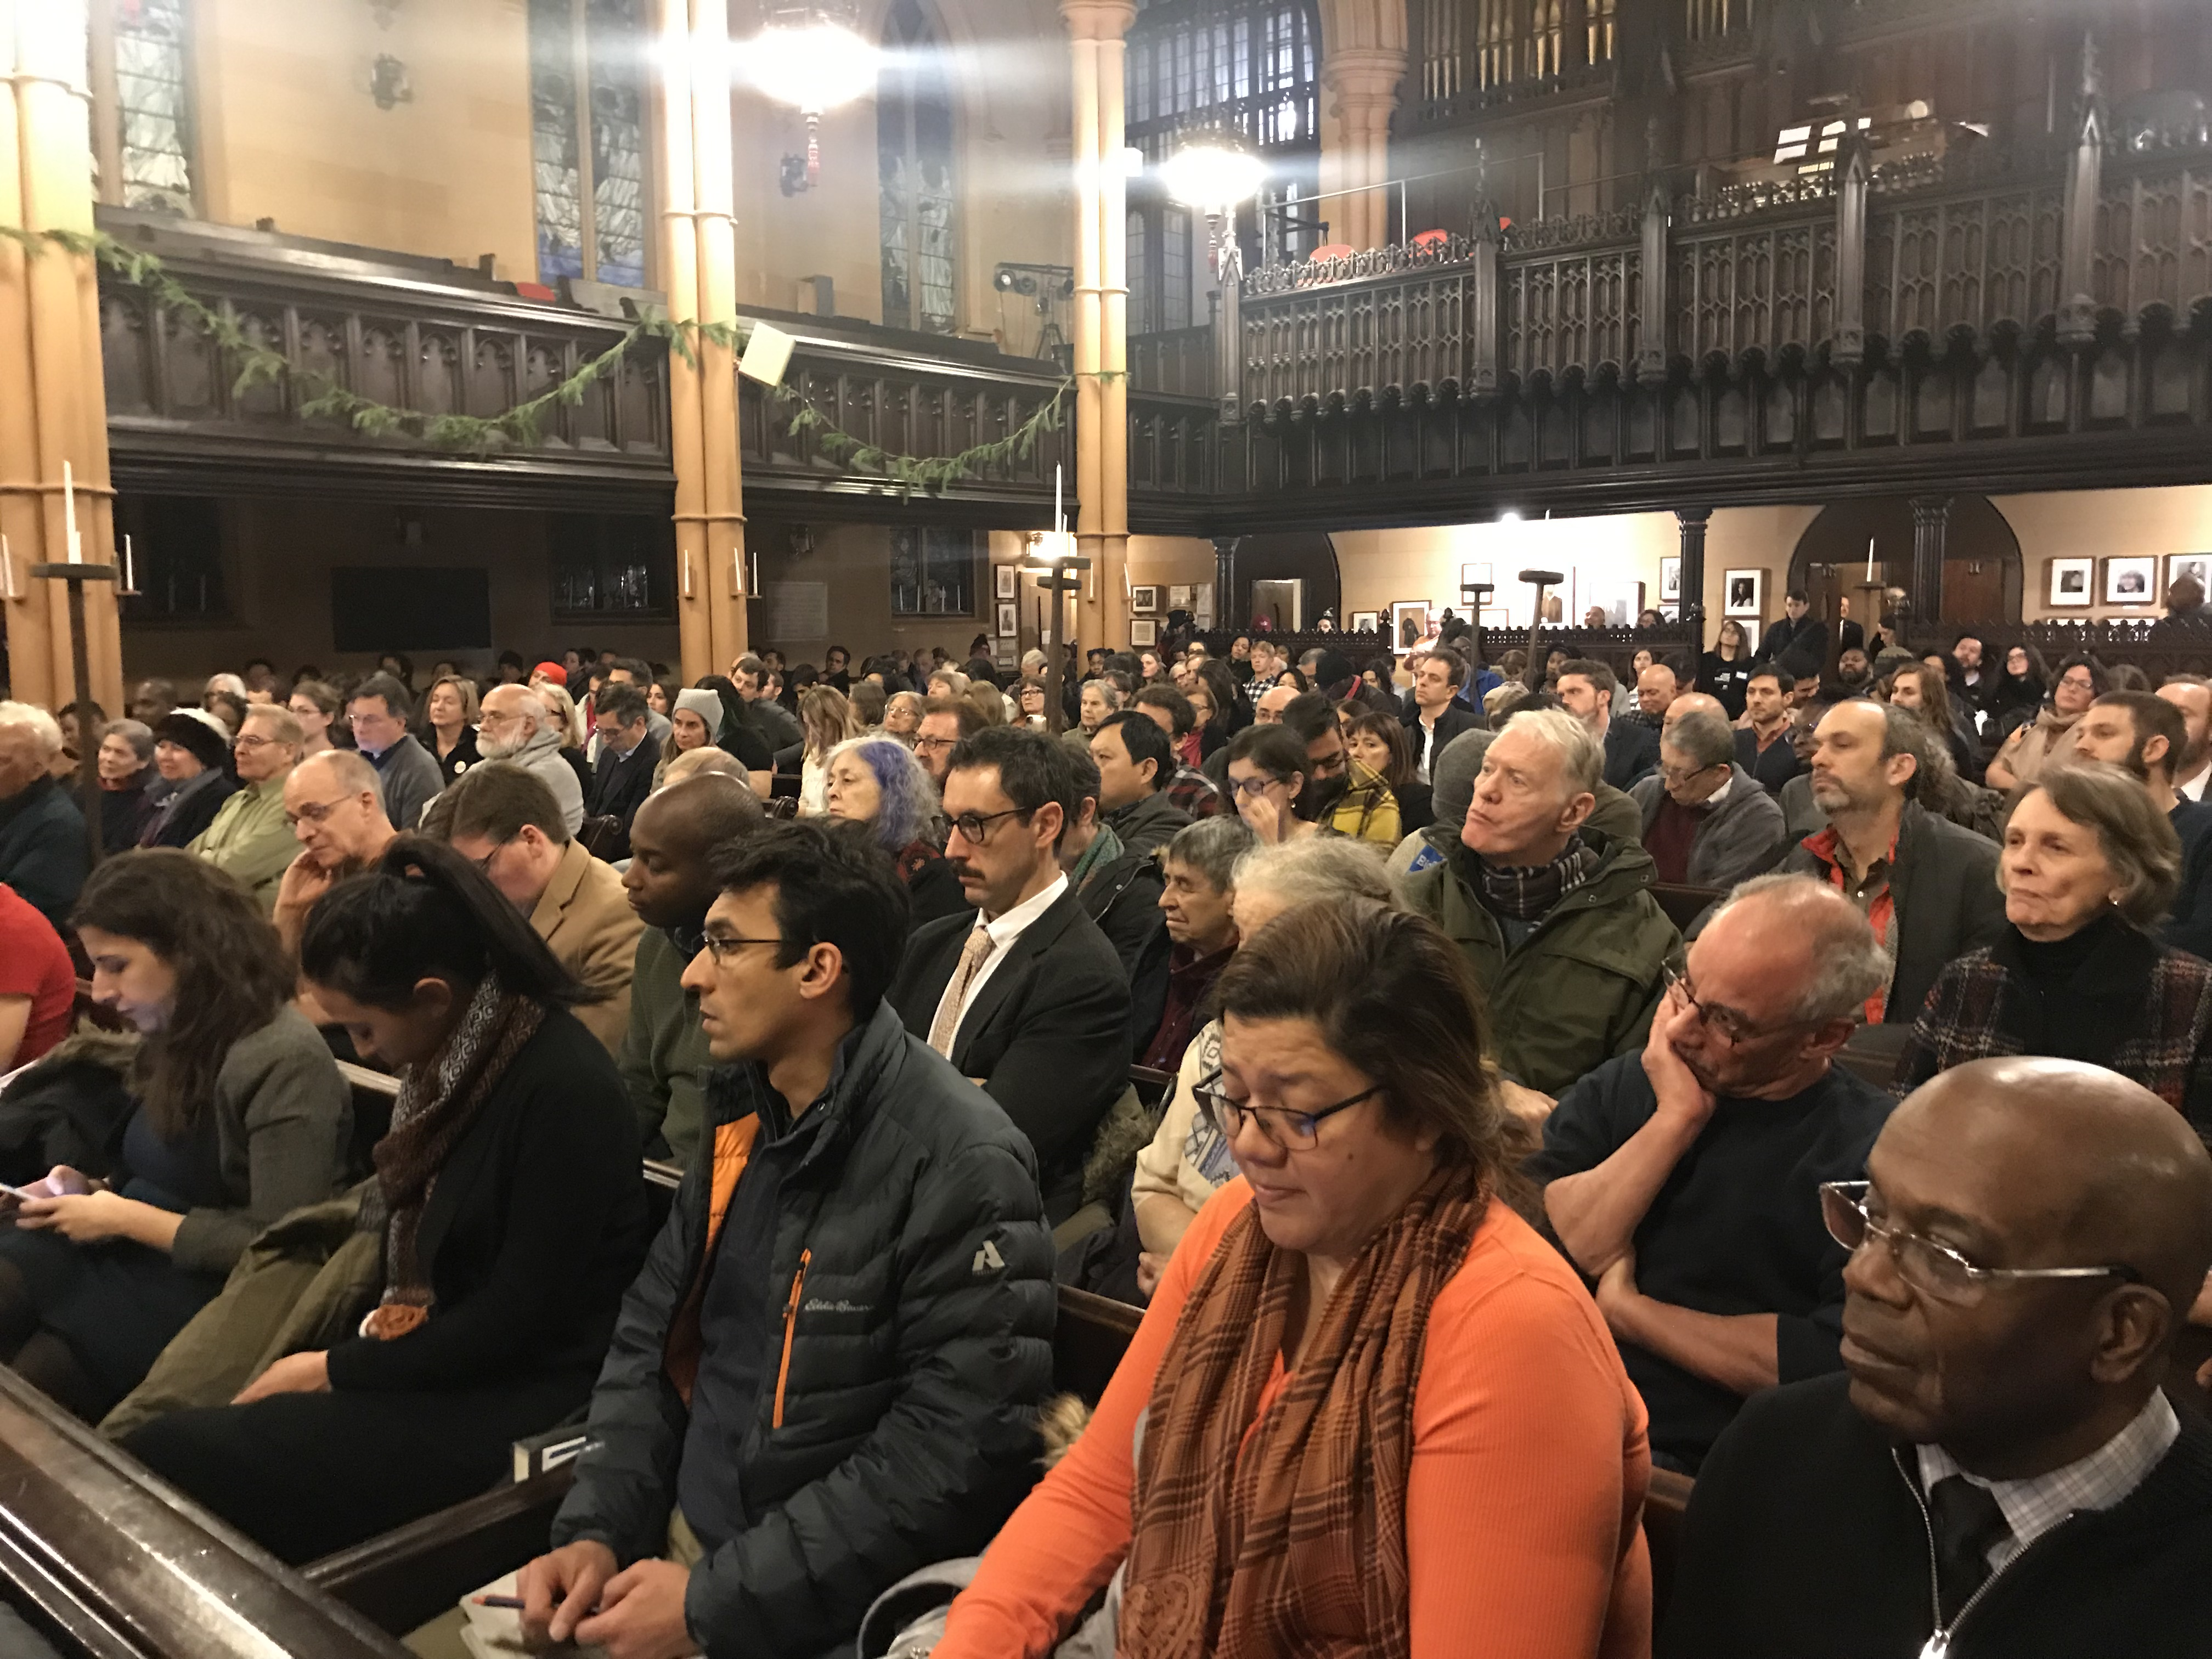 A packed house for the Brooklyn Heights Public Advocate's forum at the First Unitarian Congregational Society in Brooklyn Heights (Photo: Kadia Goba/Bklyner)